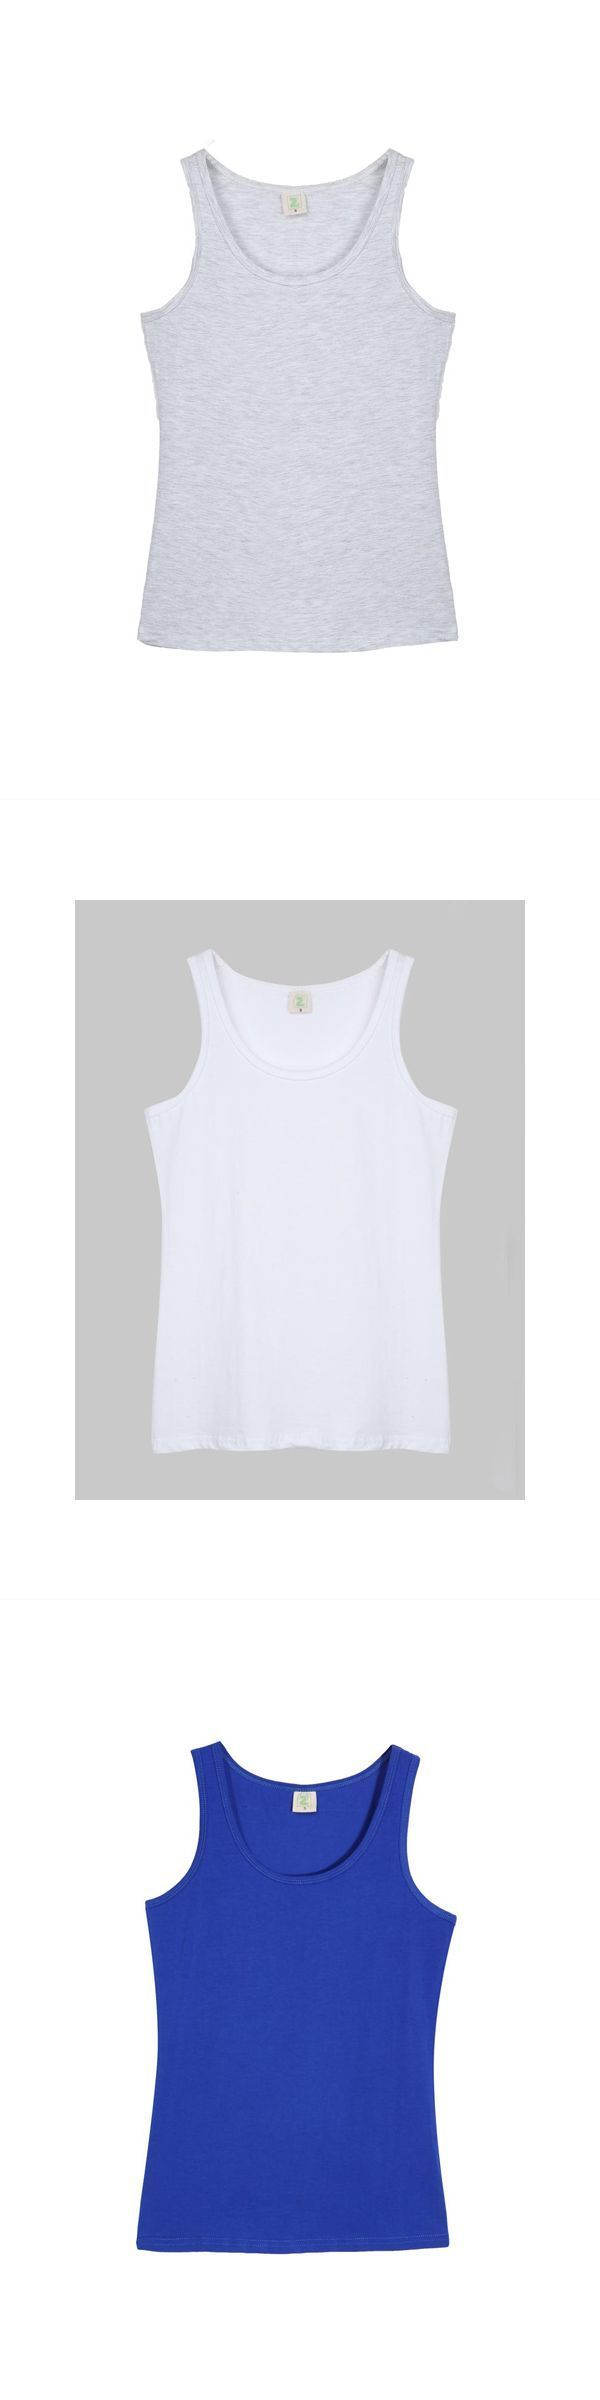 Women 8217 S Yankee Tank Tops Spaghetti Strap Solid Color Cotton Vest